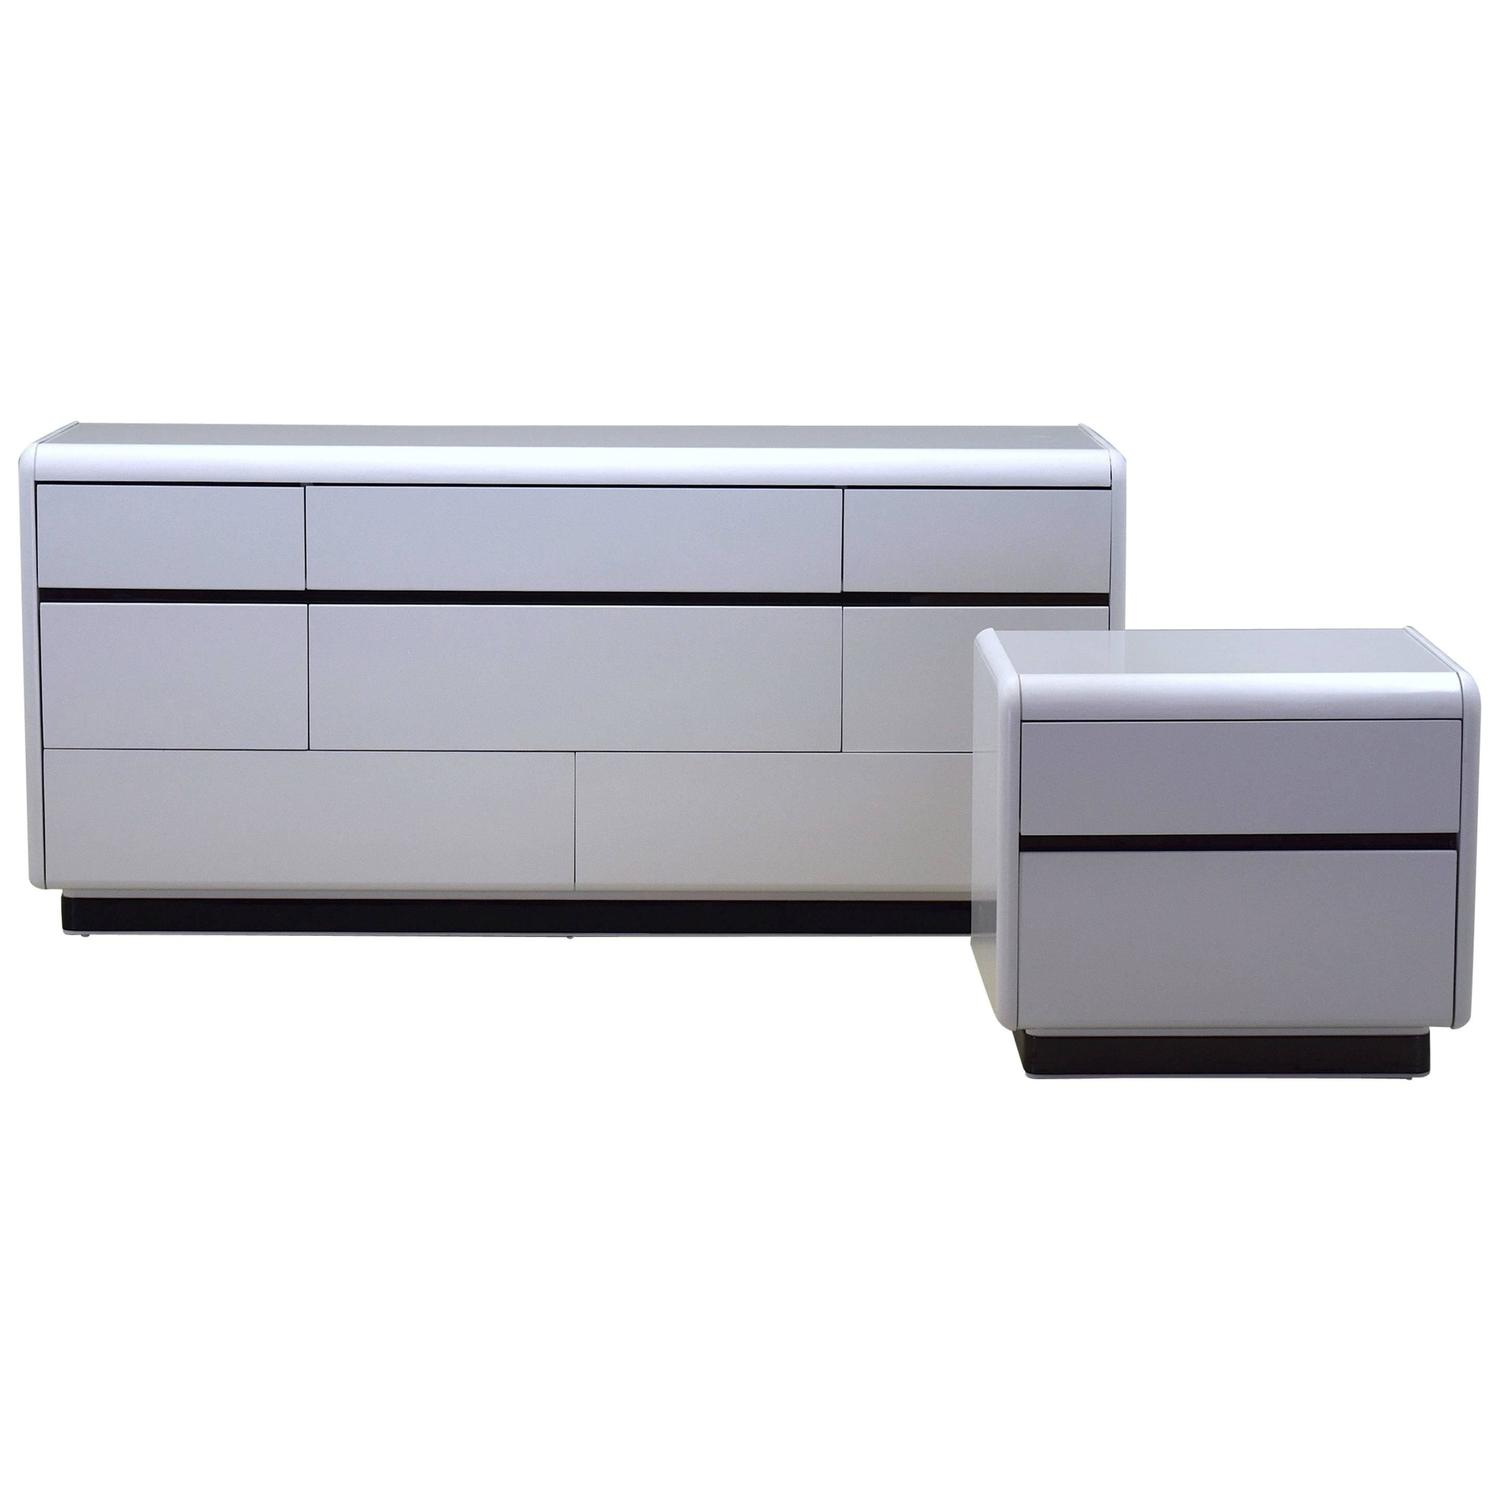 Modern white lacquered dresser and nightstand by lane at 1stdibs - Adorable iconic furniture design adapts black and white color ...